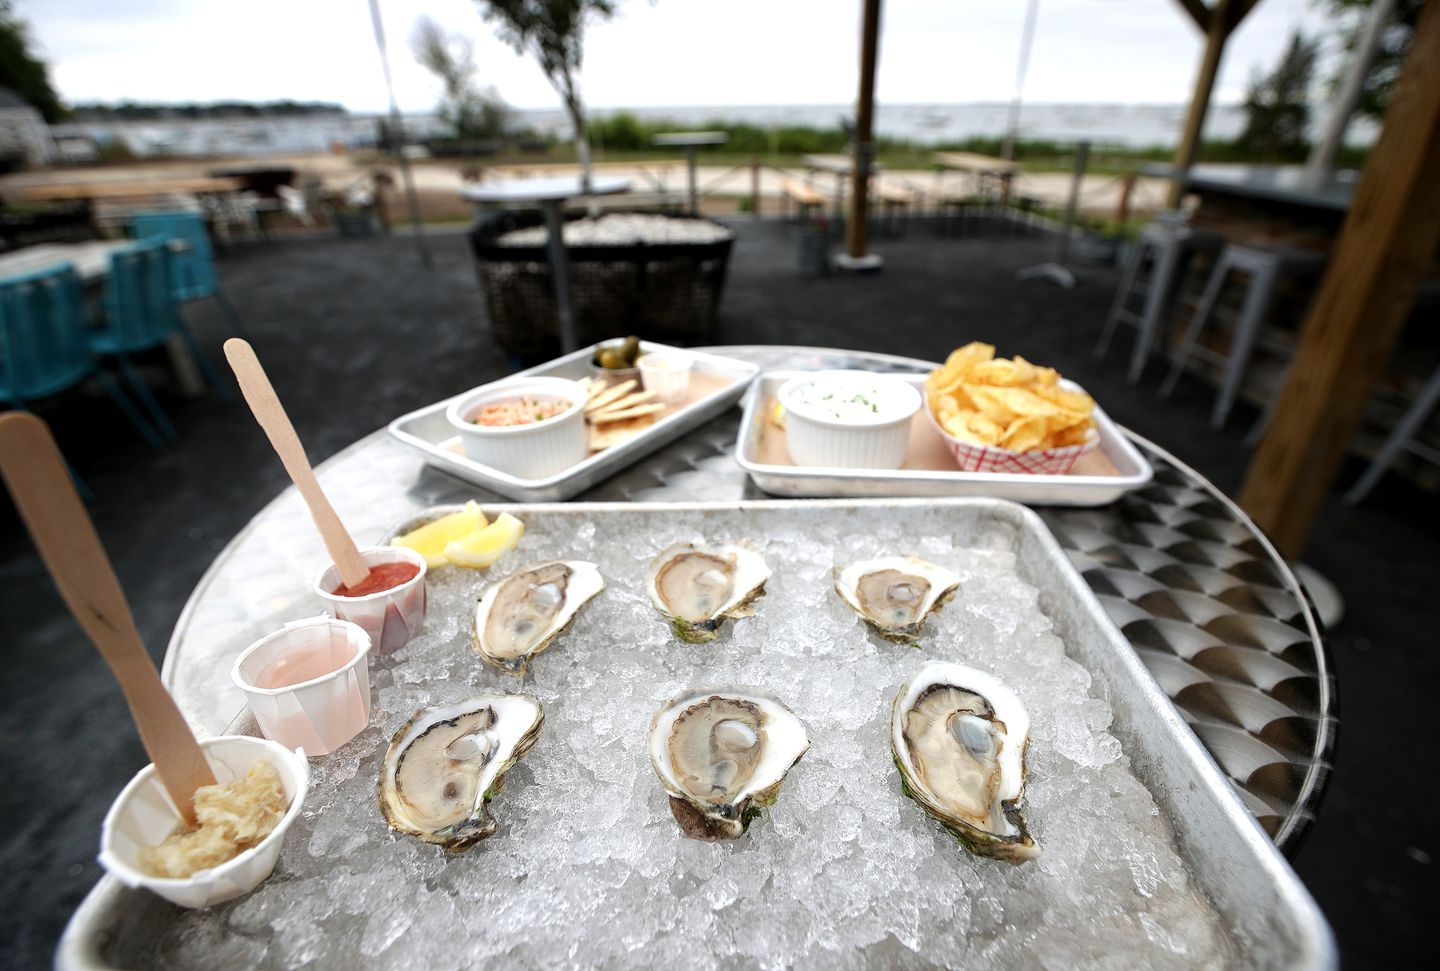 Oysters Don T Get Any Fresher Than The Ones Offered Waterside At Island Creek Oyster Farm In Duxbury The Boston Globe